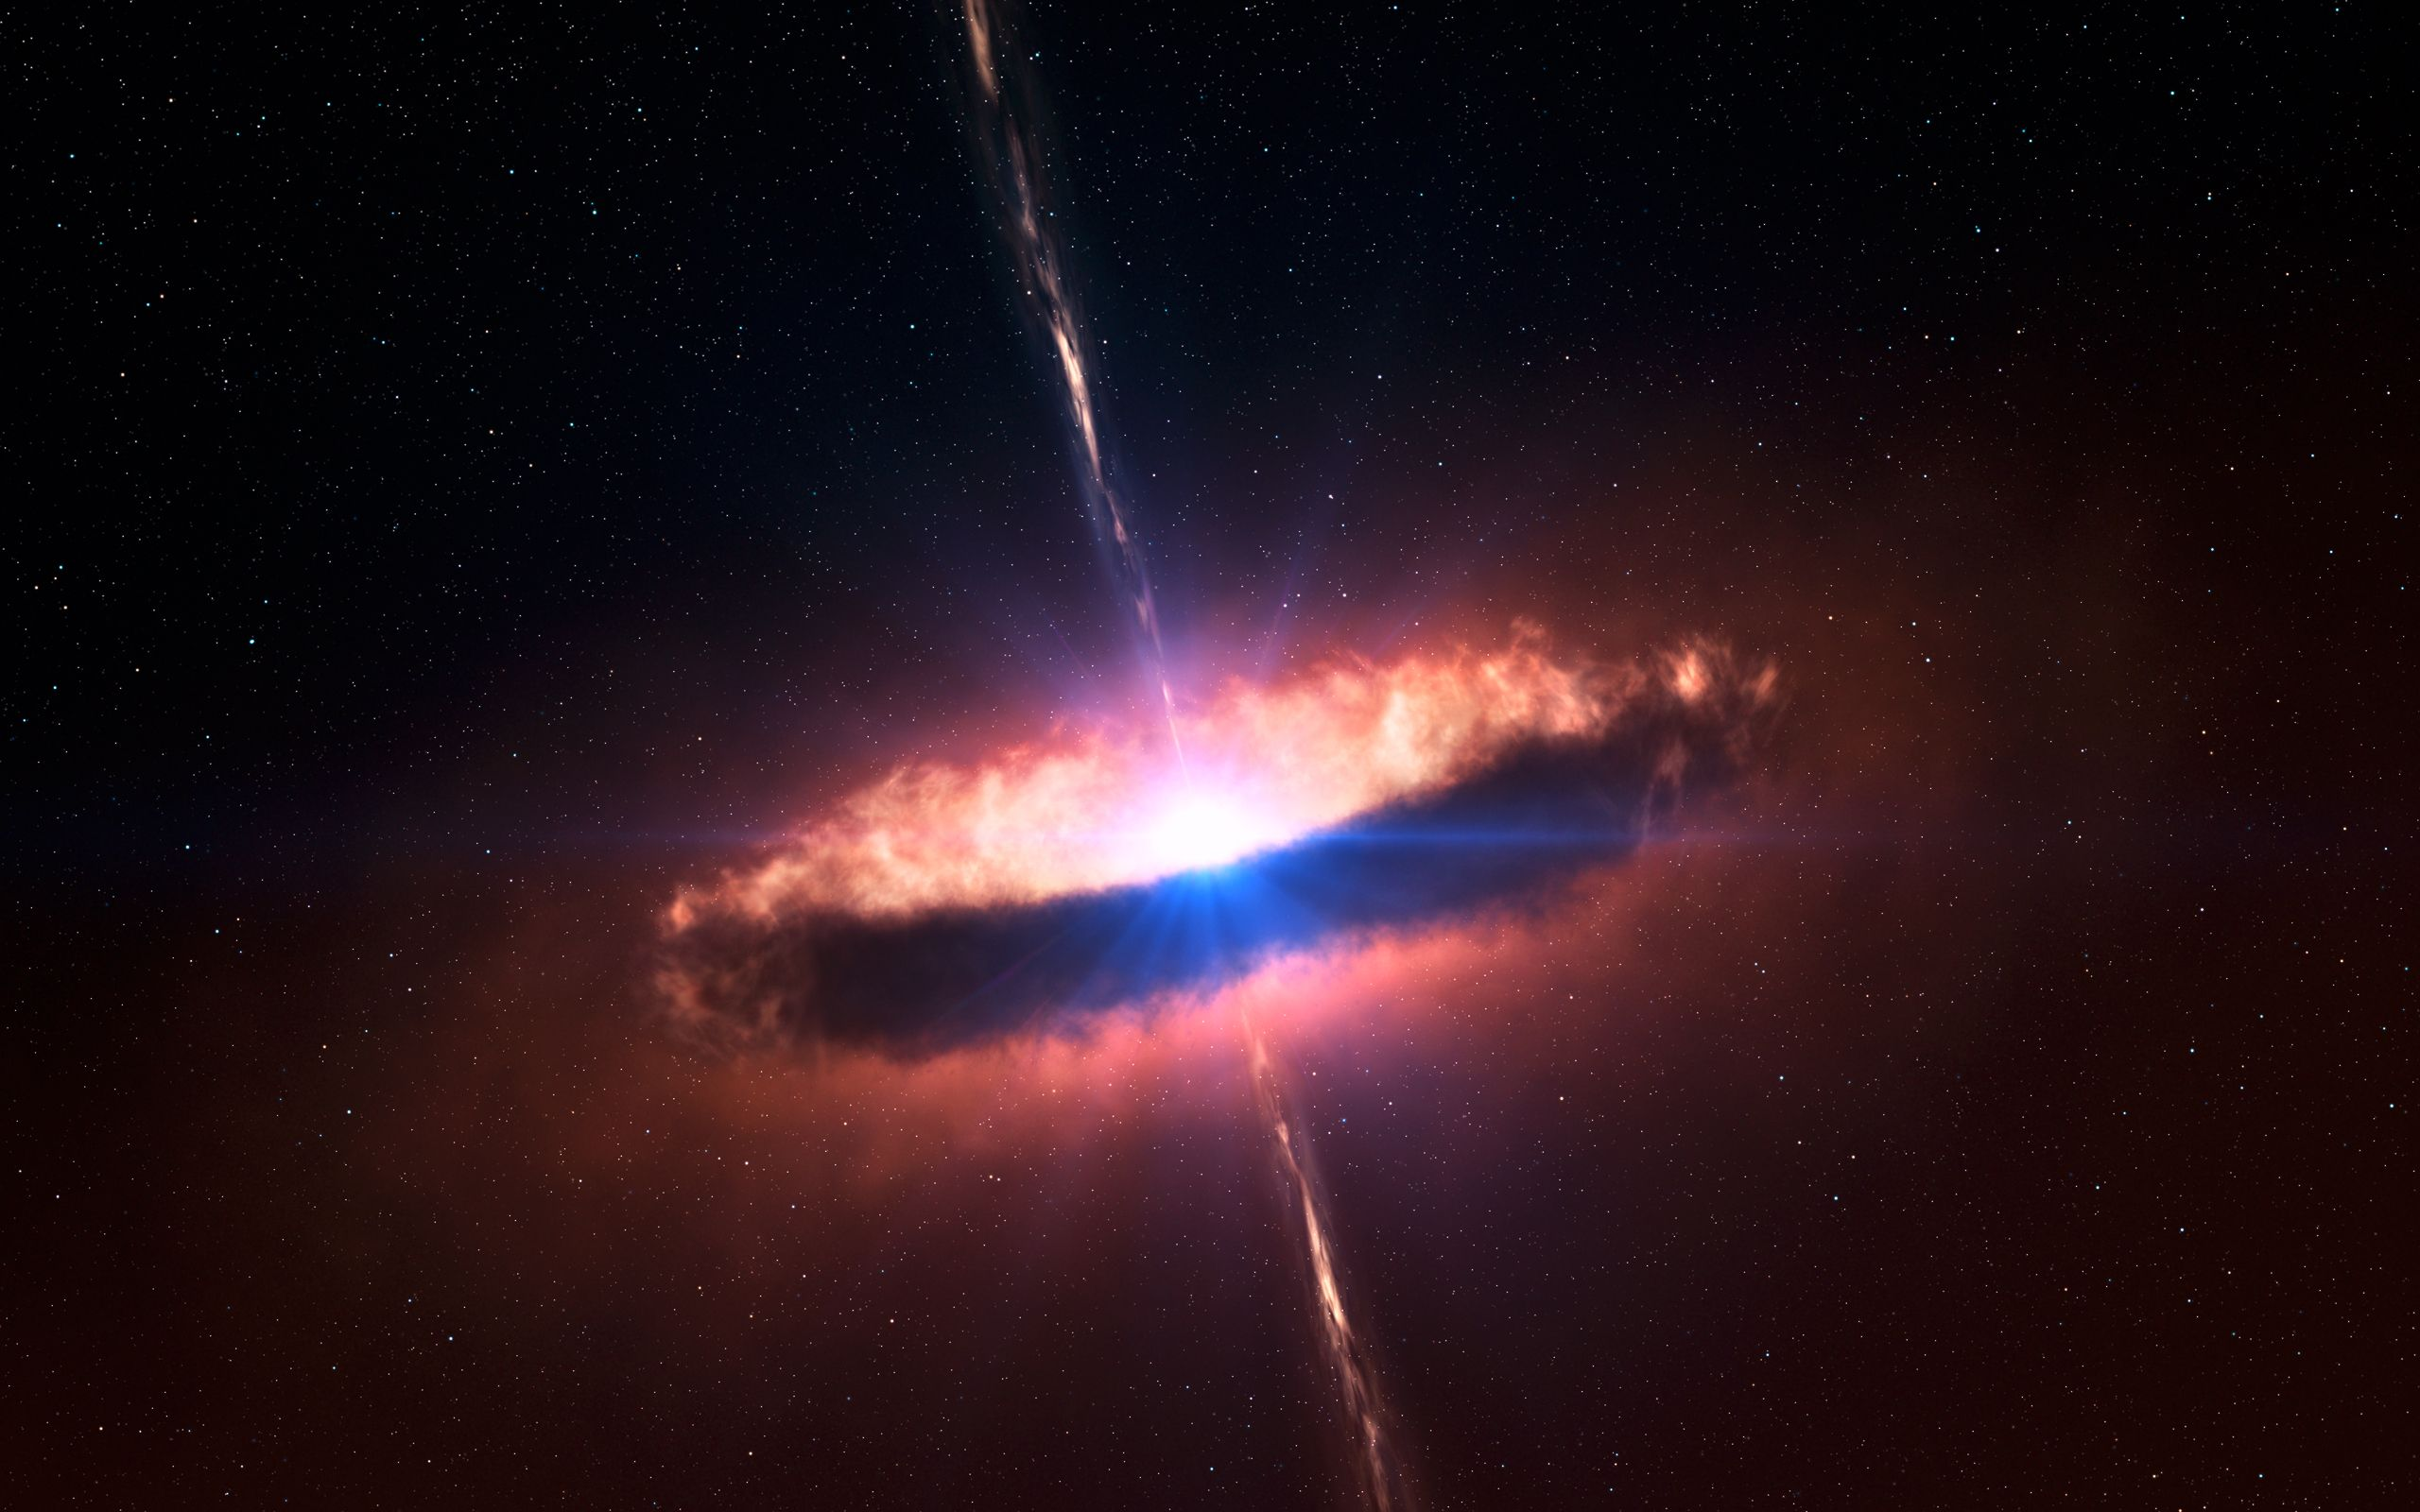 Black Hole Wallpaper Moving Wallpapersafari Wallpaper Space Nebula Wallpaper Cosmos